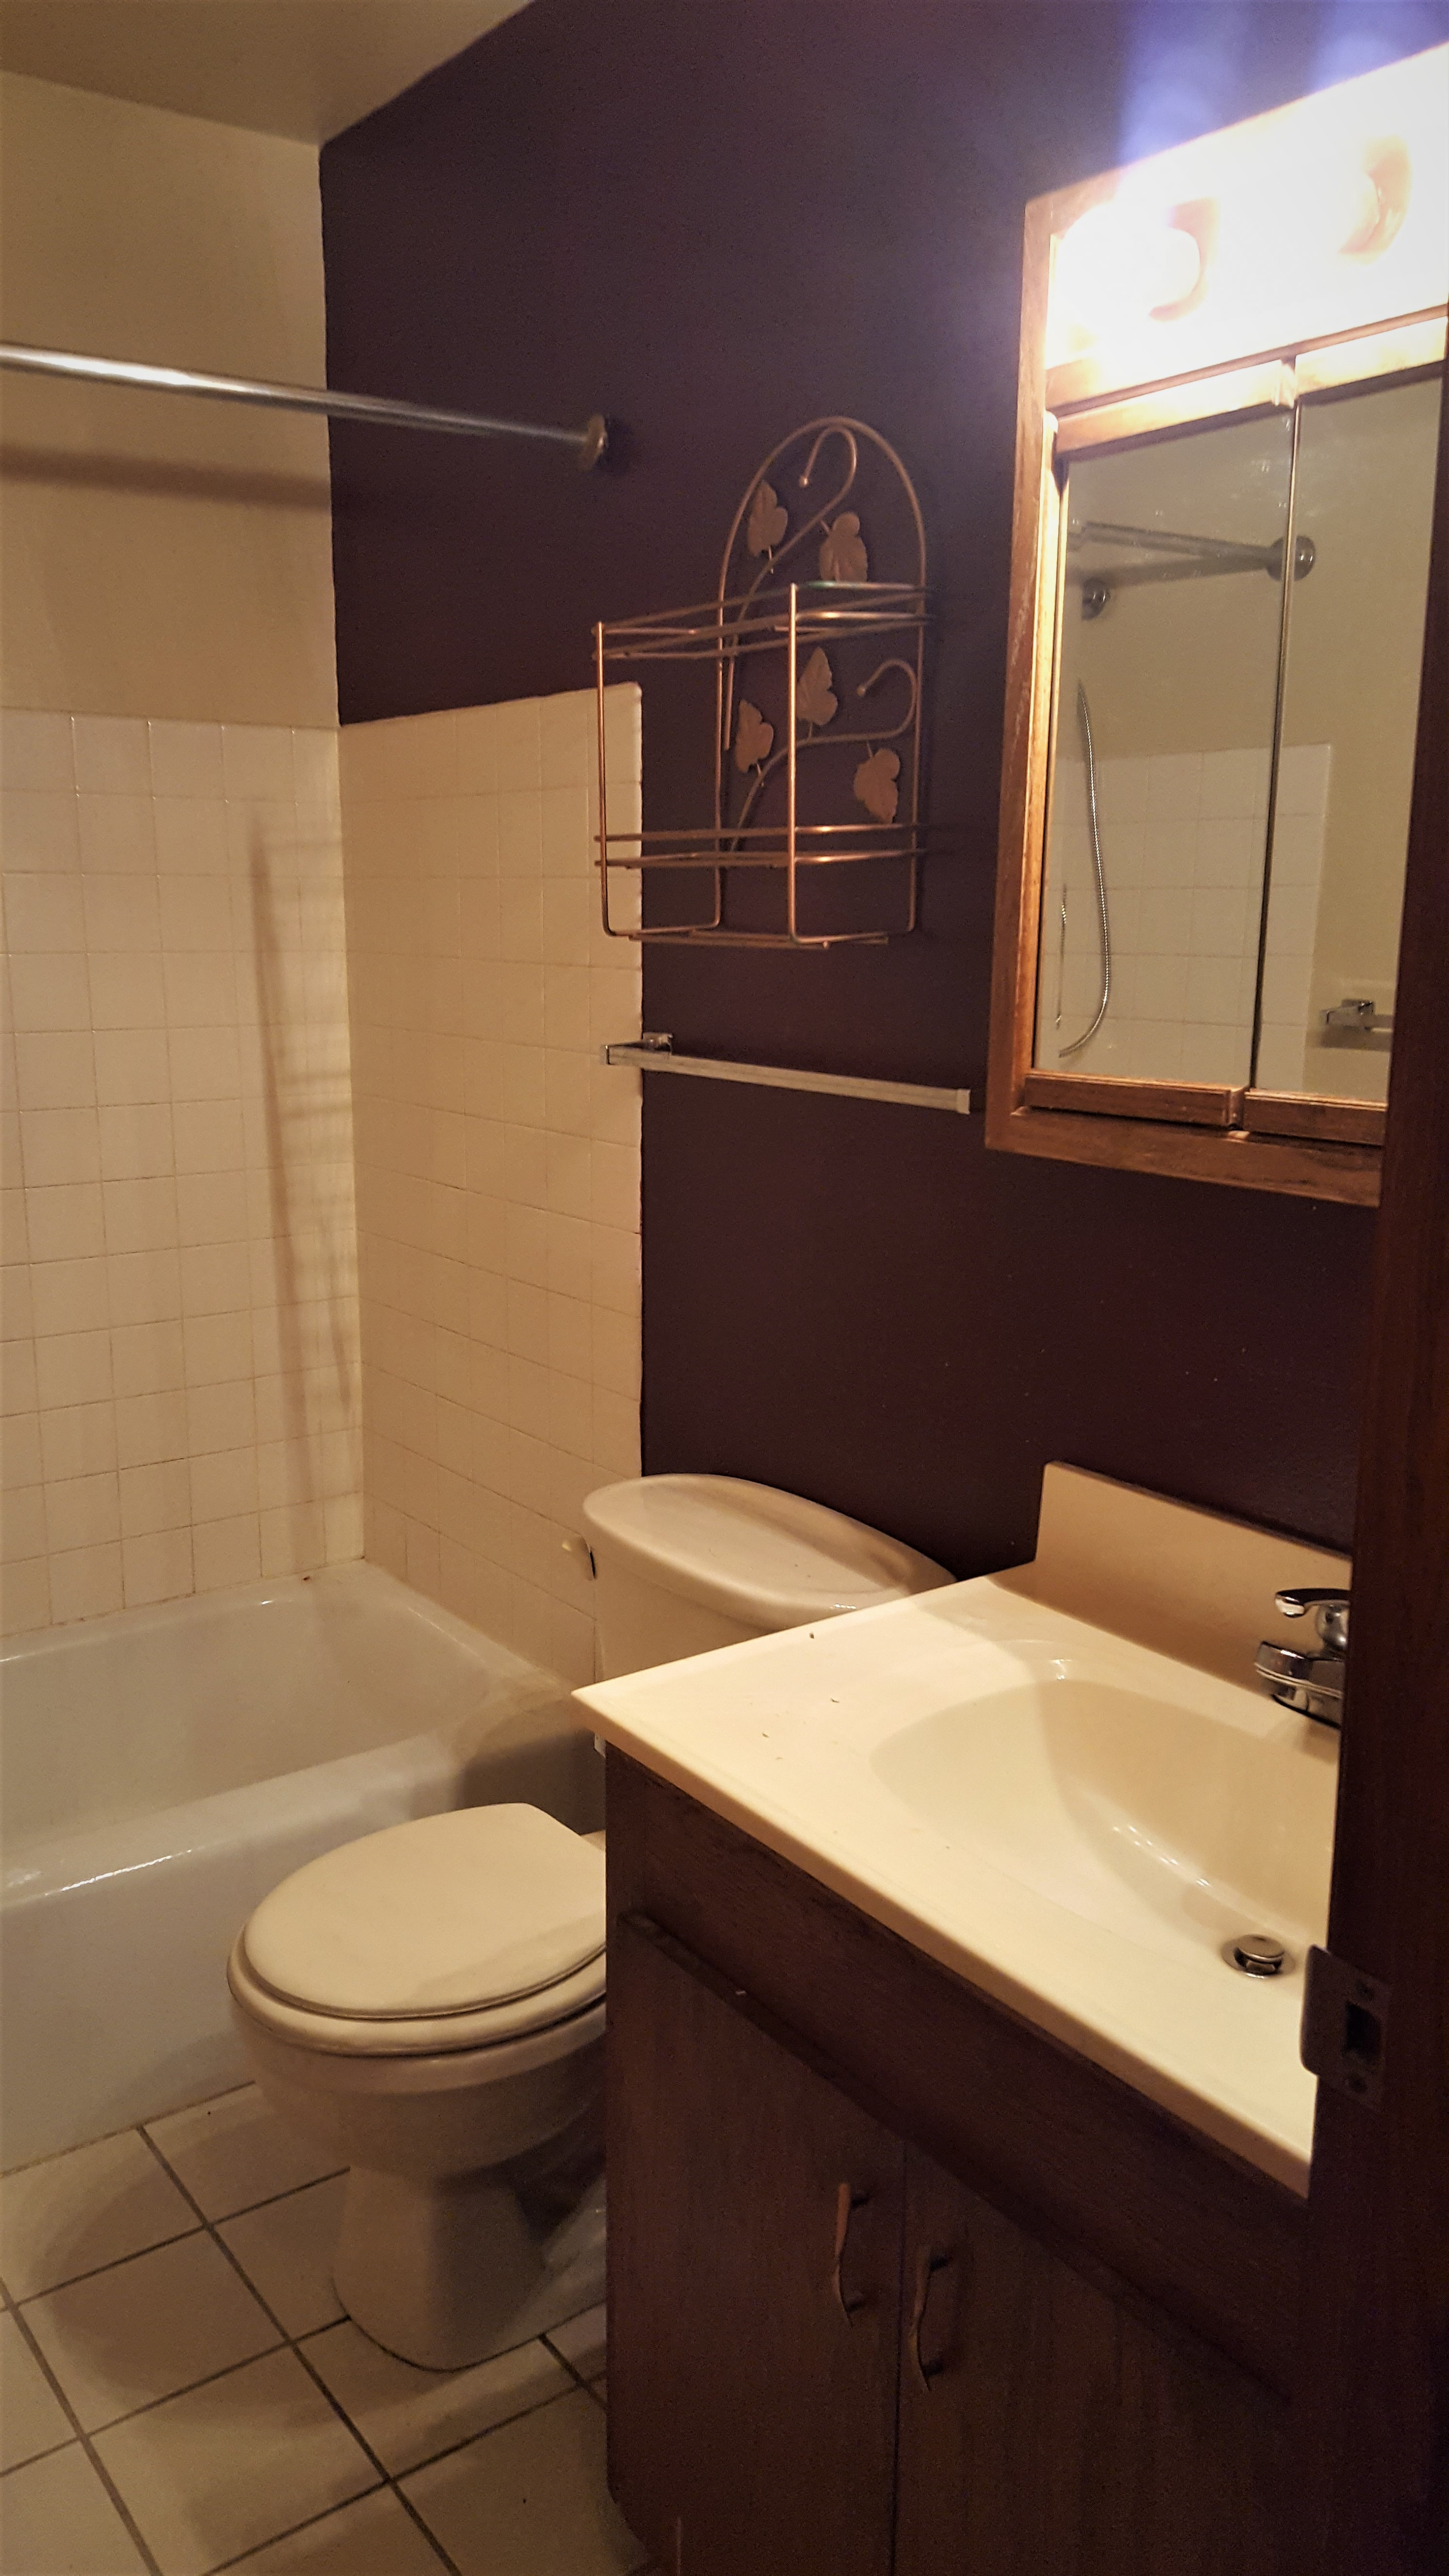 Typical To Timely Bathroom Time 2 Remodel Llc